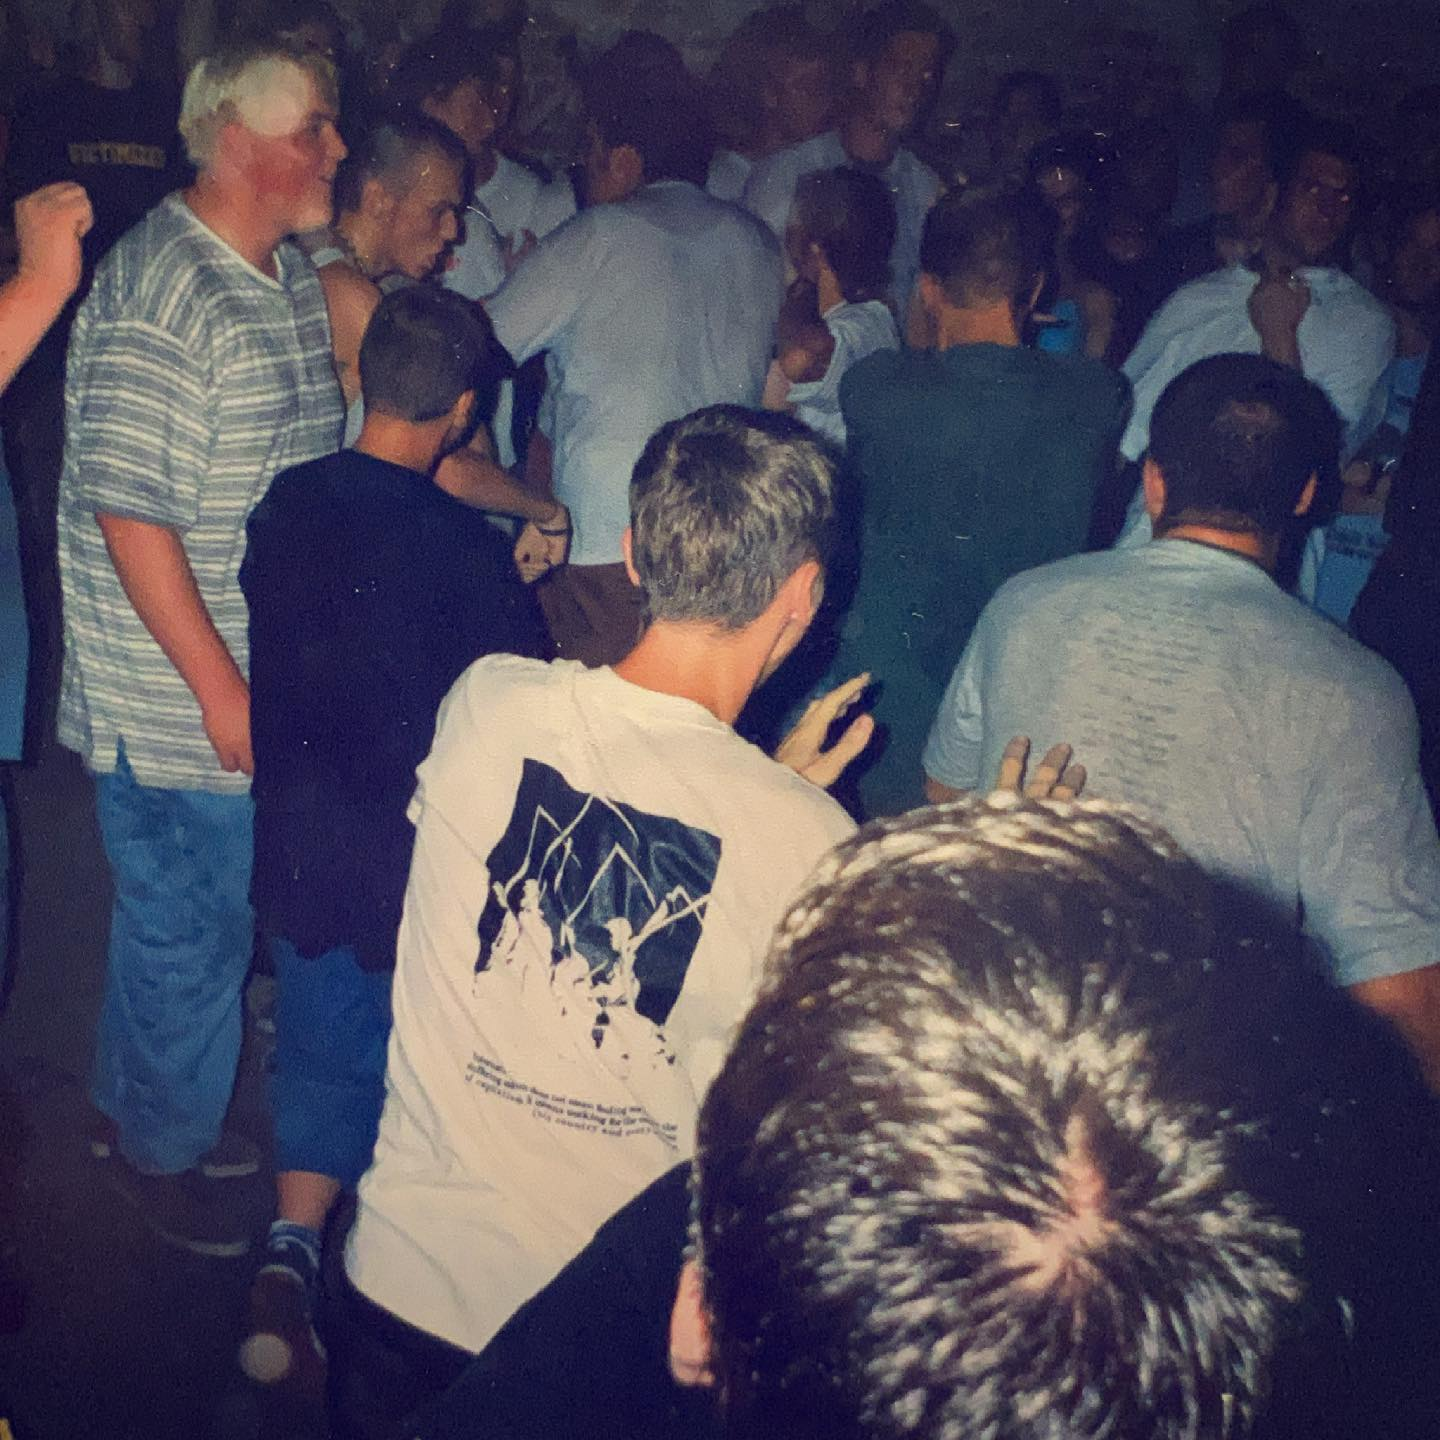 A circlepit at the Ieper Hardcore Festival. Can't remember what band it was - Vort 'n Vis Ieper (B) - 15/16/17 August 1997 #straightedge #hardcore #youthcrew #gigpic by @twentylandcrew